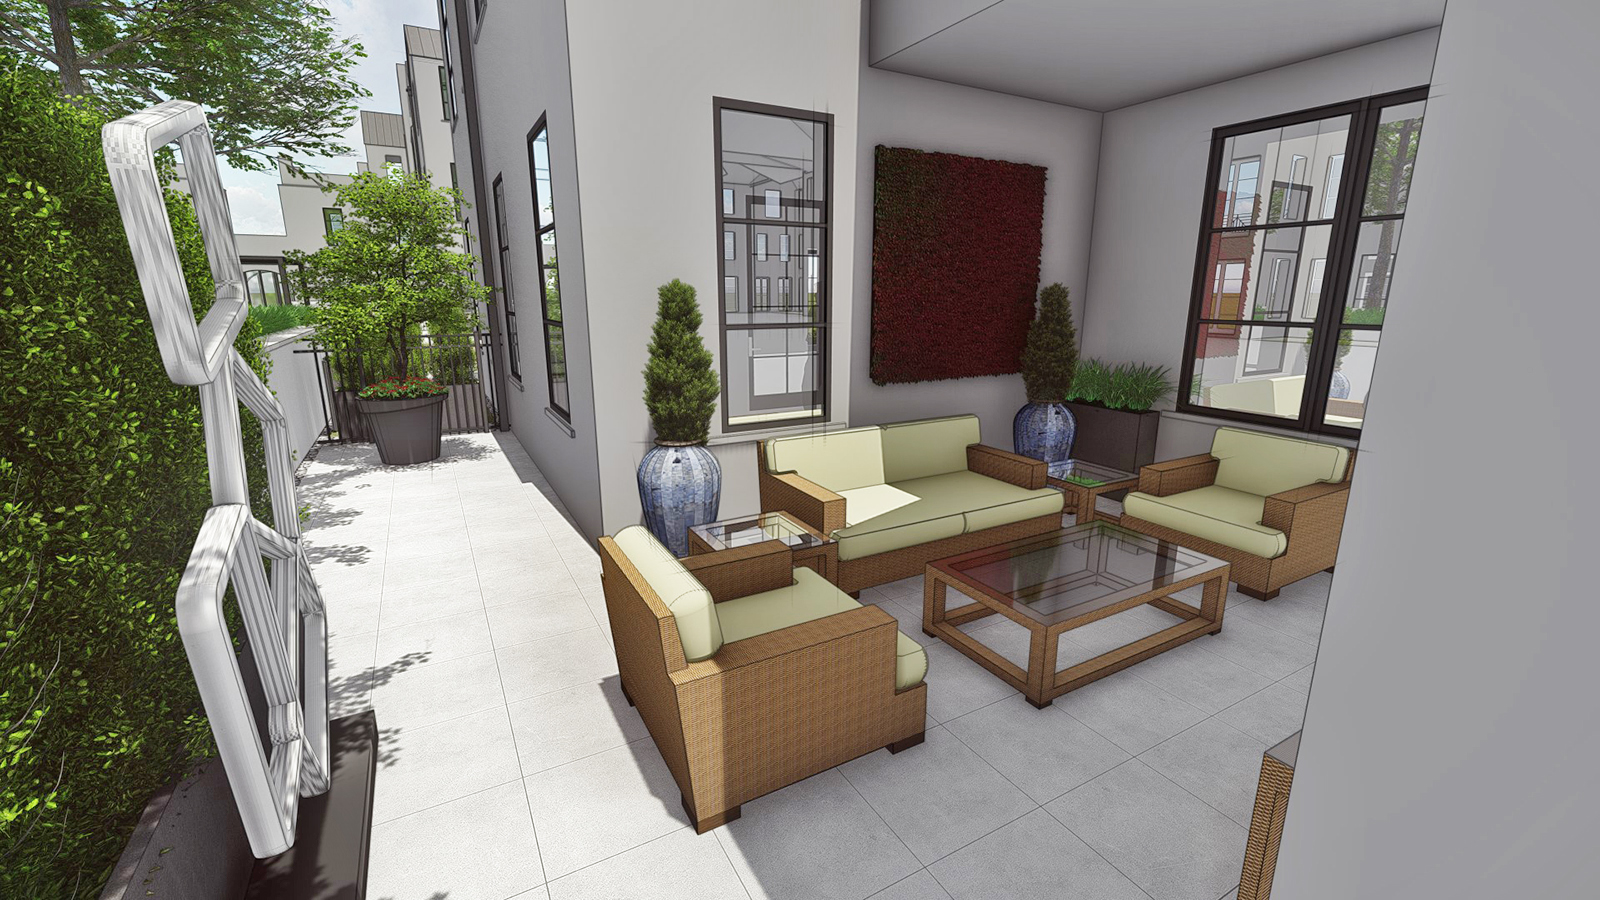 COVERED COURTYARD AREA